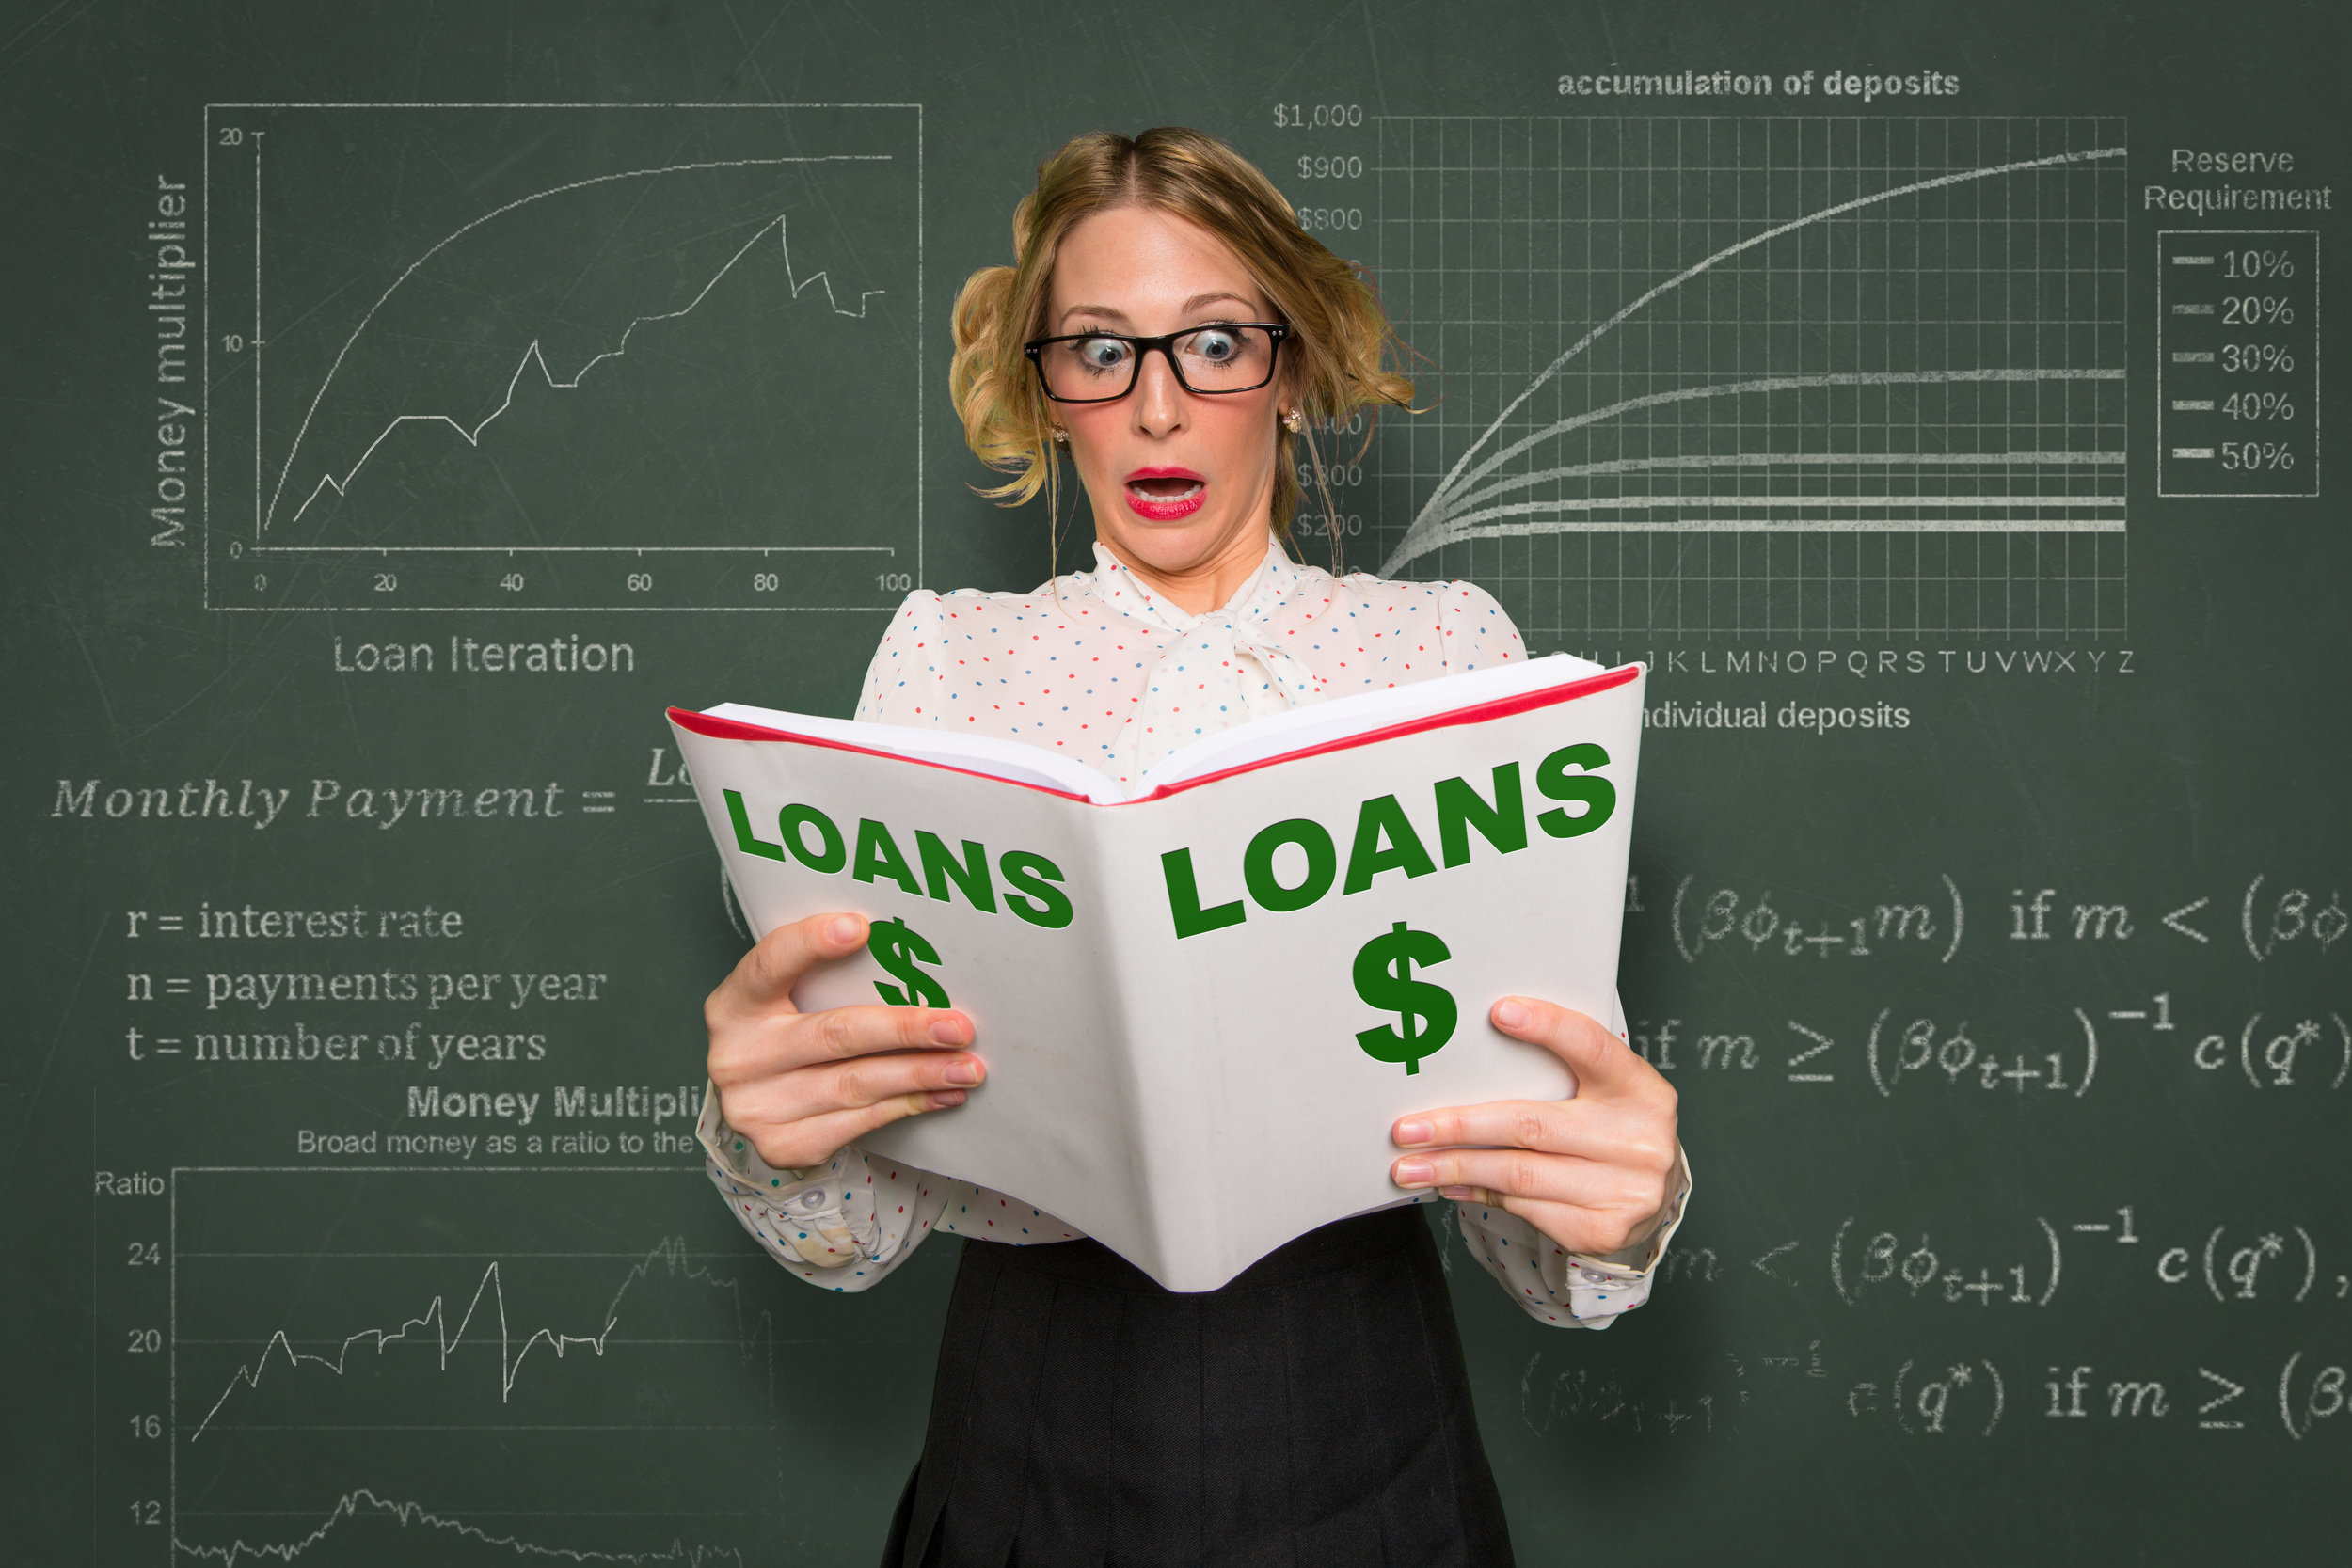 If requesting a loan, please complete the form in the link